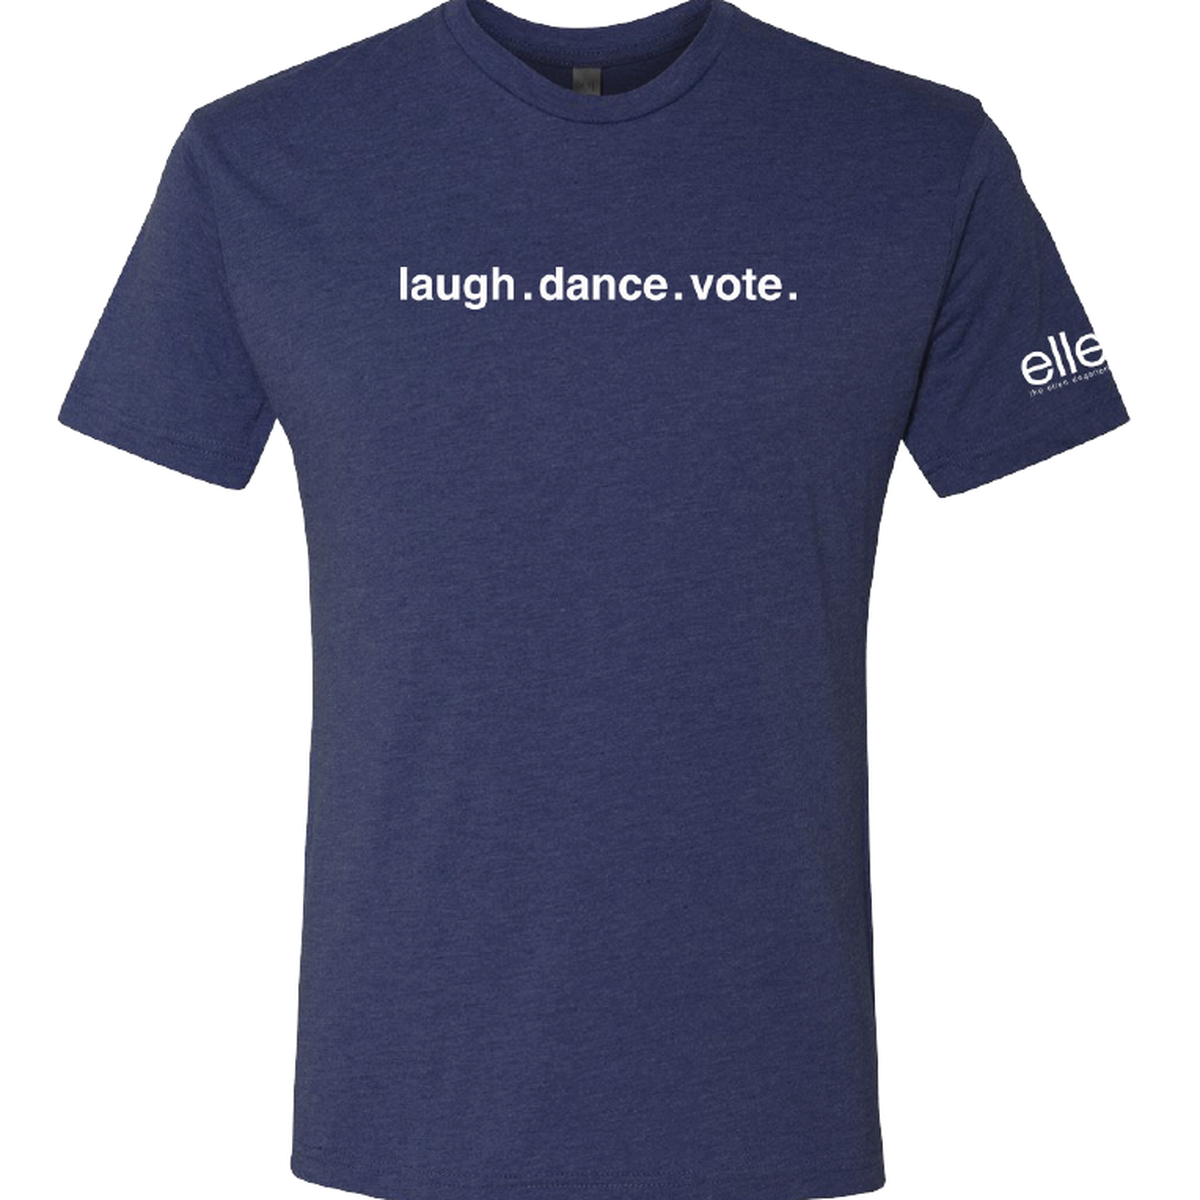 Laugh.Dance.Vote T-shirt - Navy